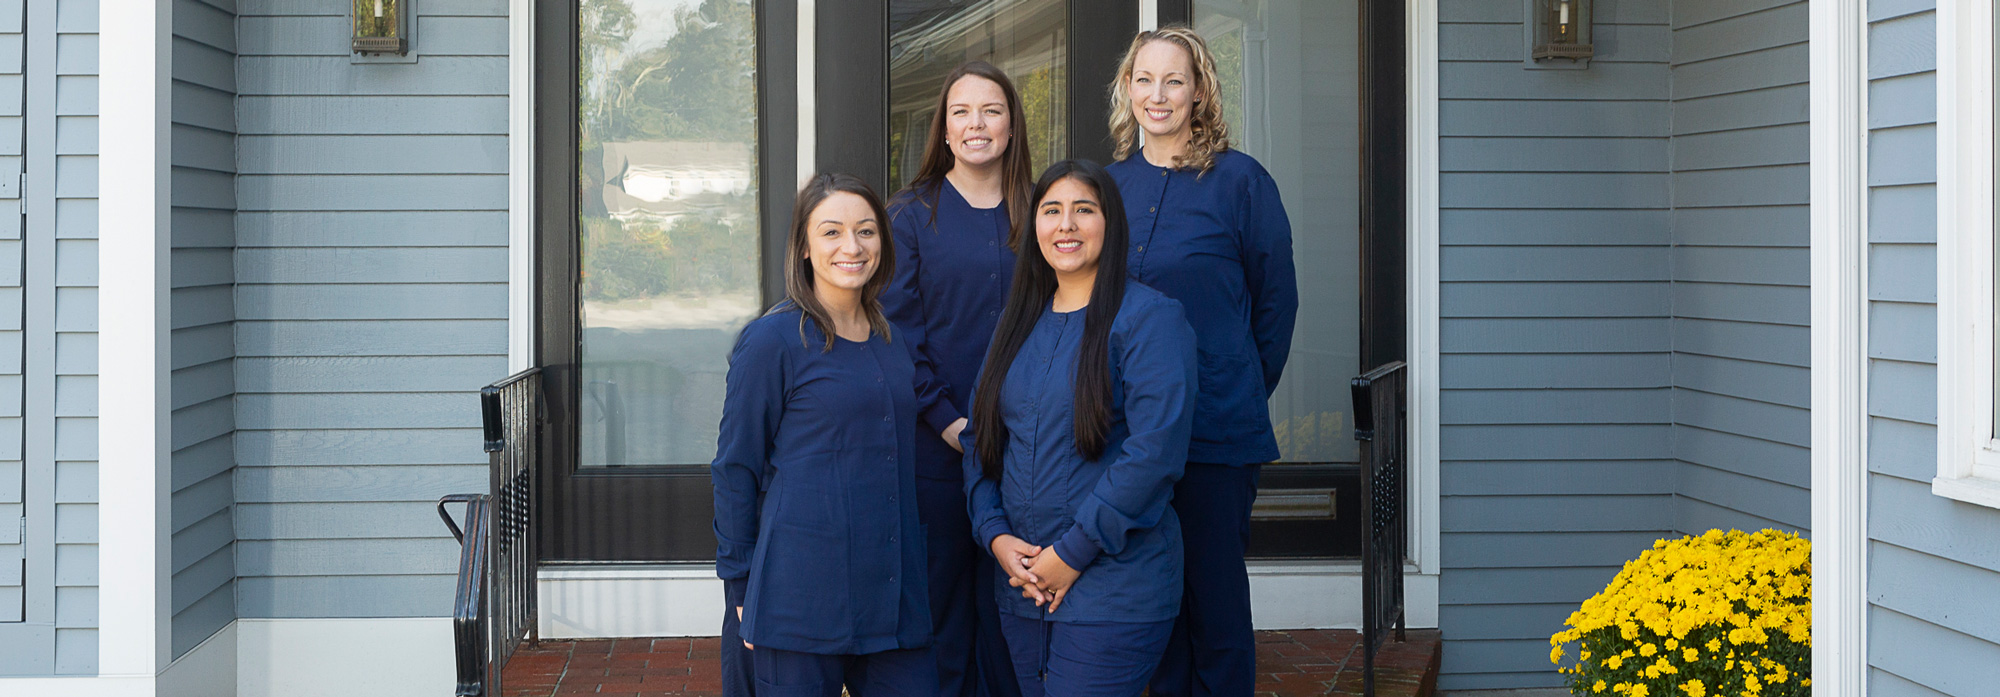 Hingham Dental Associates Family Dental Services